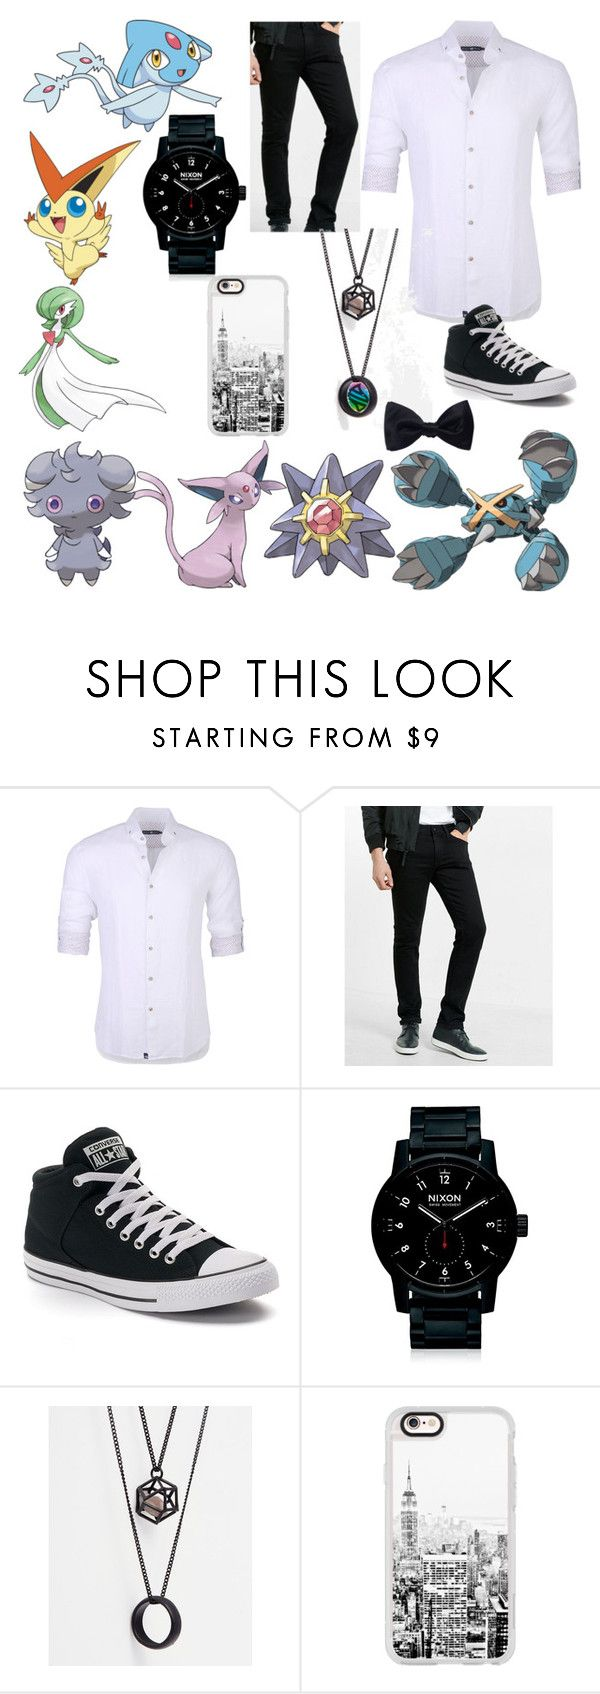 """Psych Pokemon"" by carmen-41-navarro ❤ liked on Polyvore featuring Stone Rose, Express, Converse, Nixon, ASOS, Casetify, Ike Behar, men's fashion and menswear"